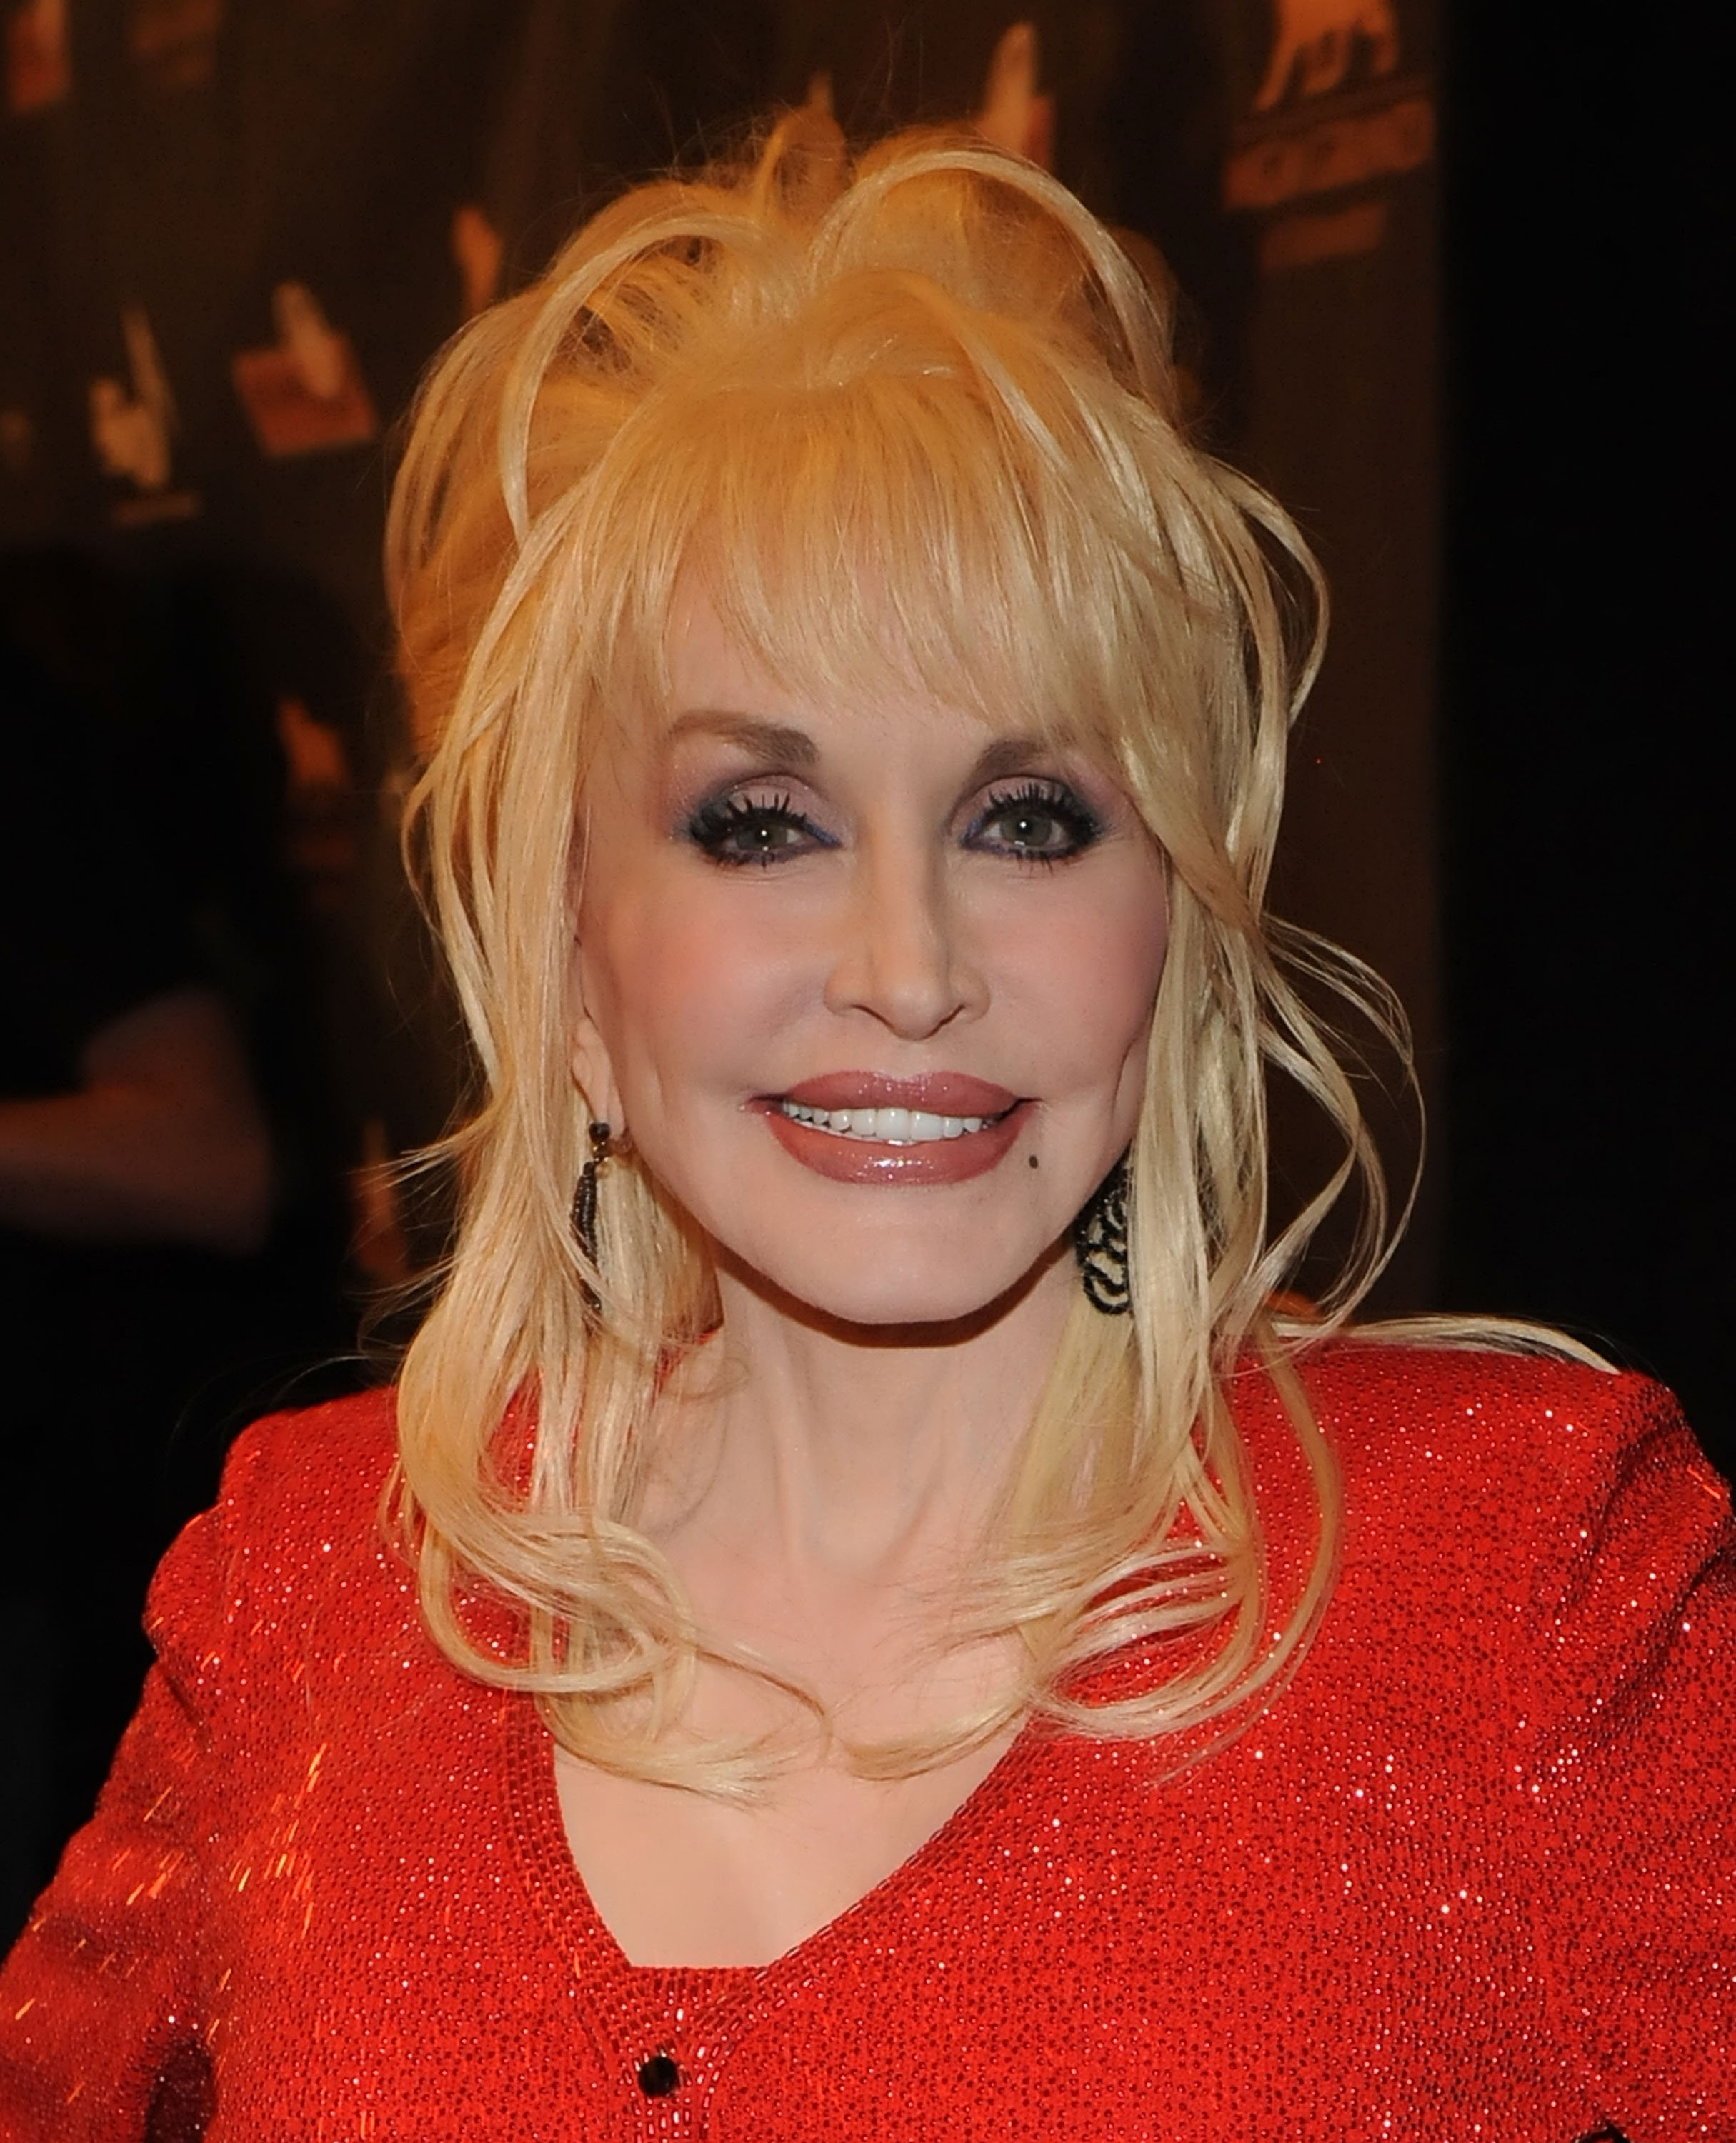 Dolly Parton attends the Kenny Rogers: The First 50 Years award show on April 10, 2010, in Ledyard Center, Connecticut. | Source: Getty Images.